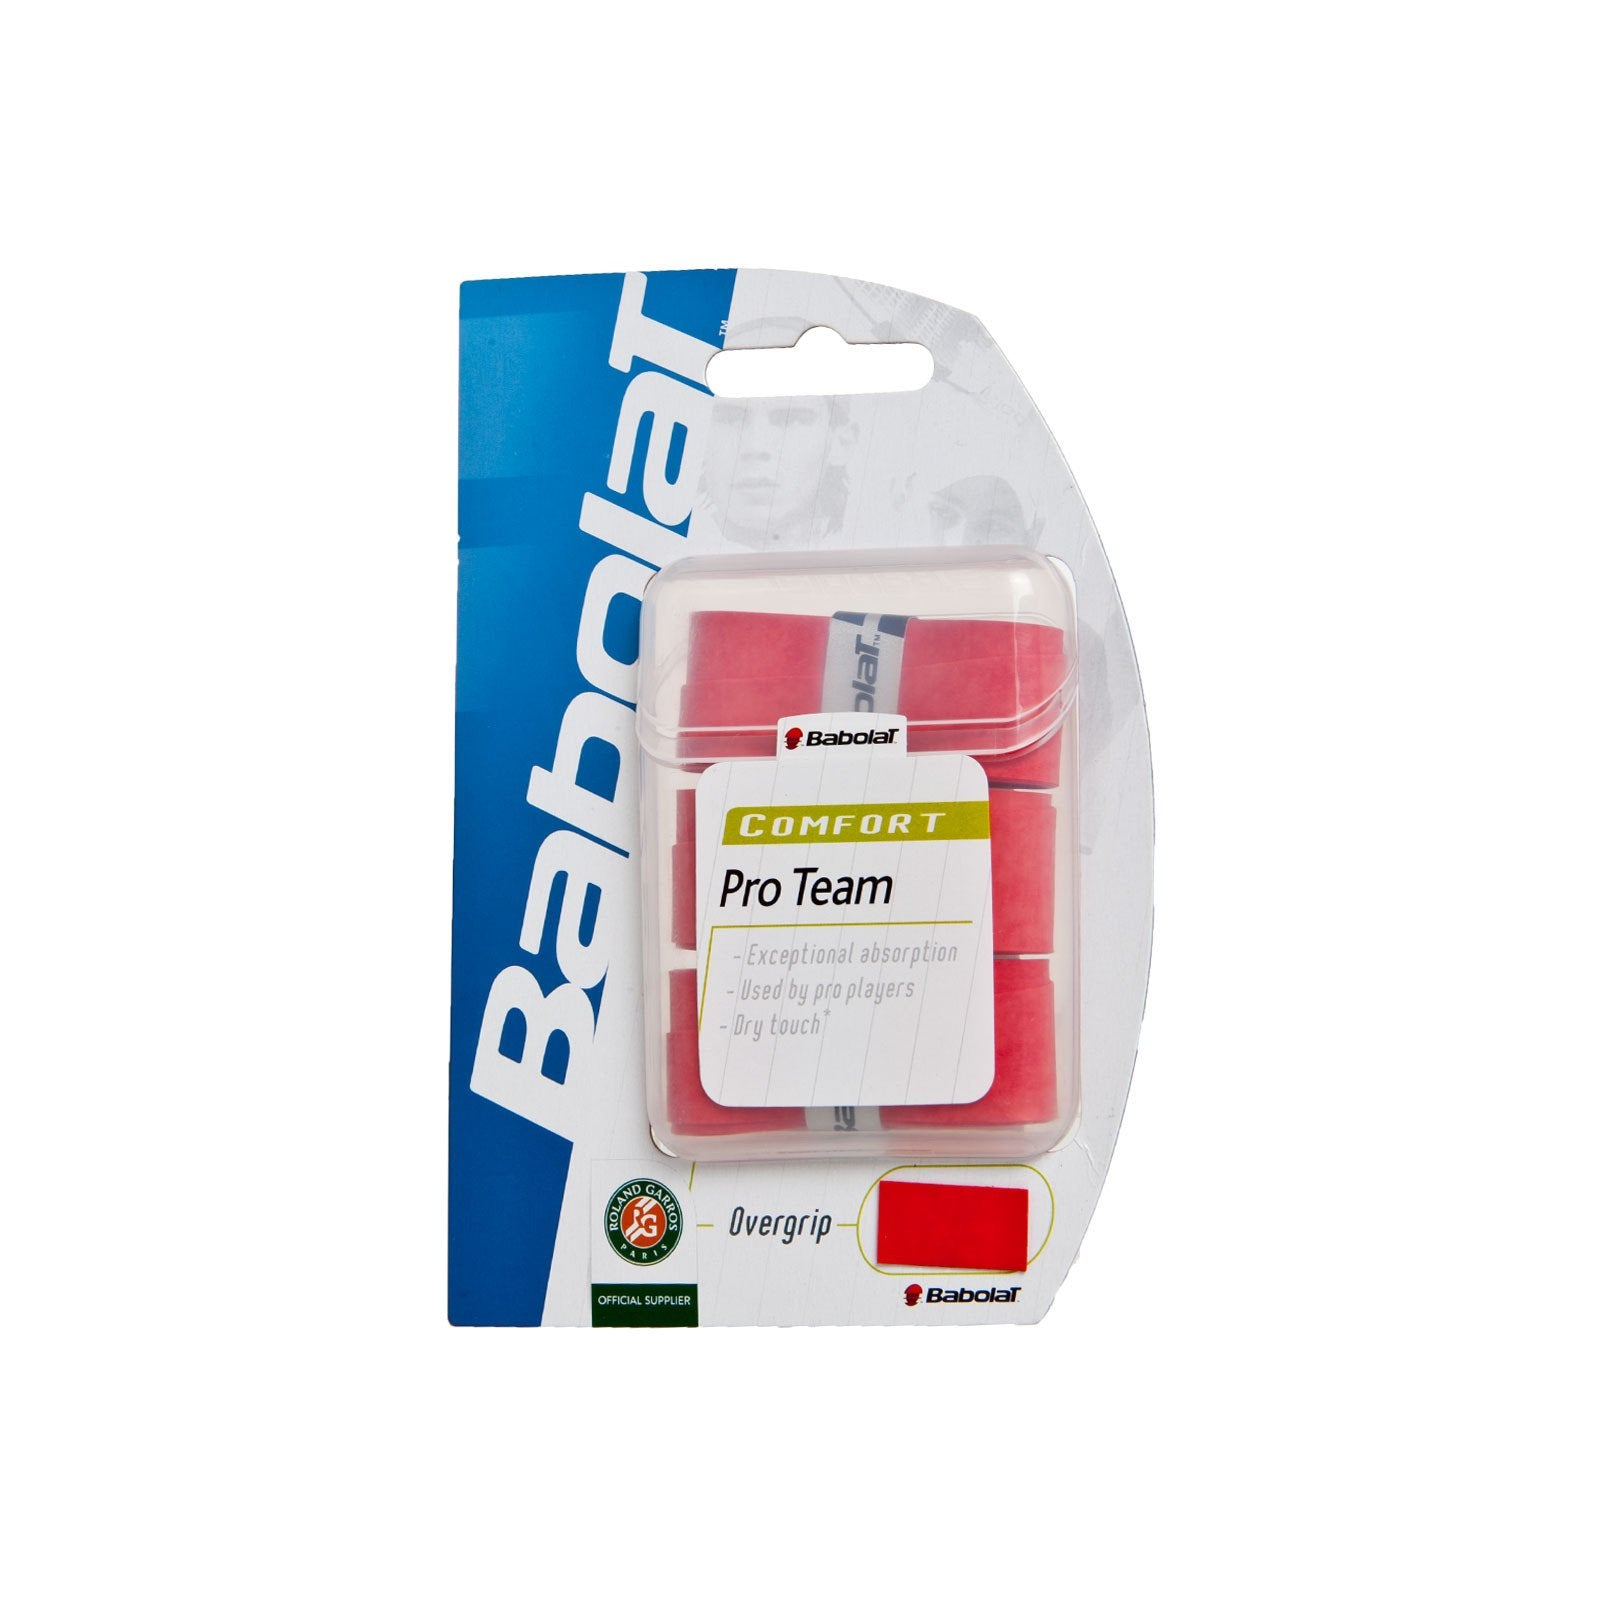 Babolat - Pro Team Comfort Overgrip-Tennis Accessories-Kunstadt Sports